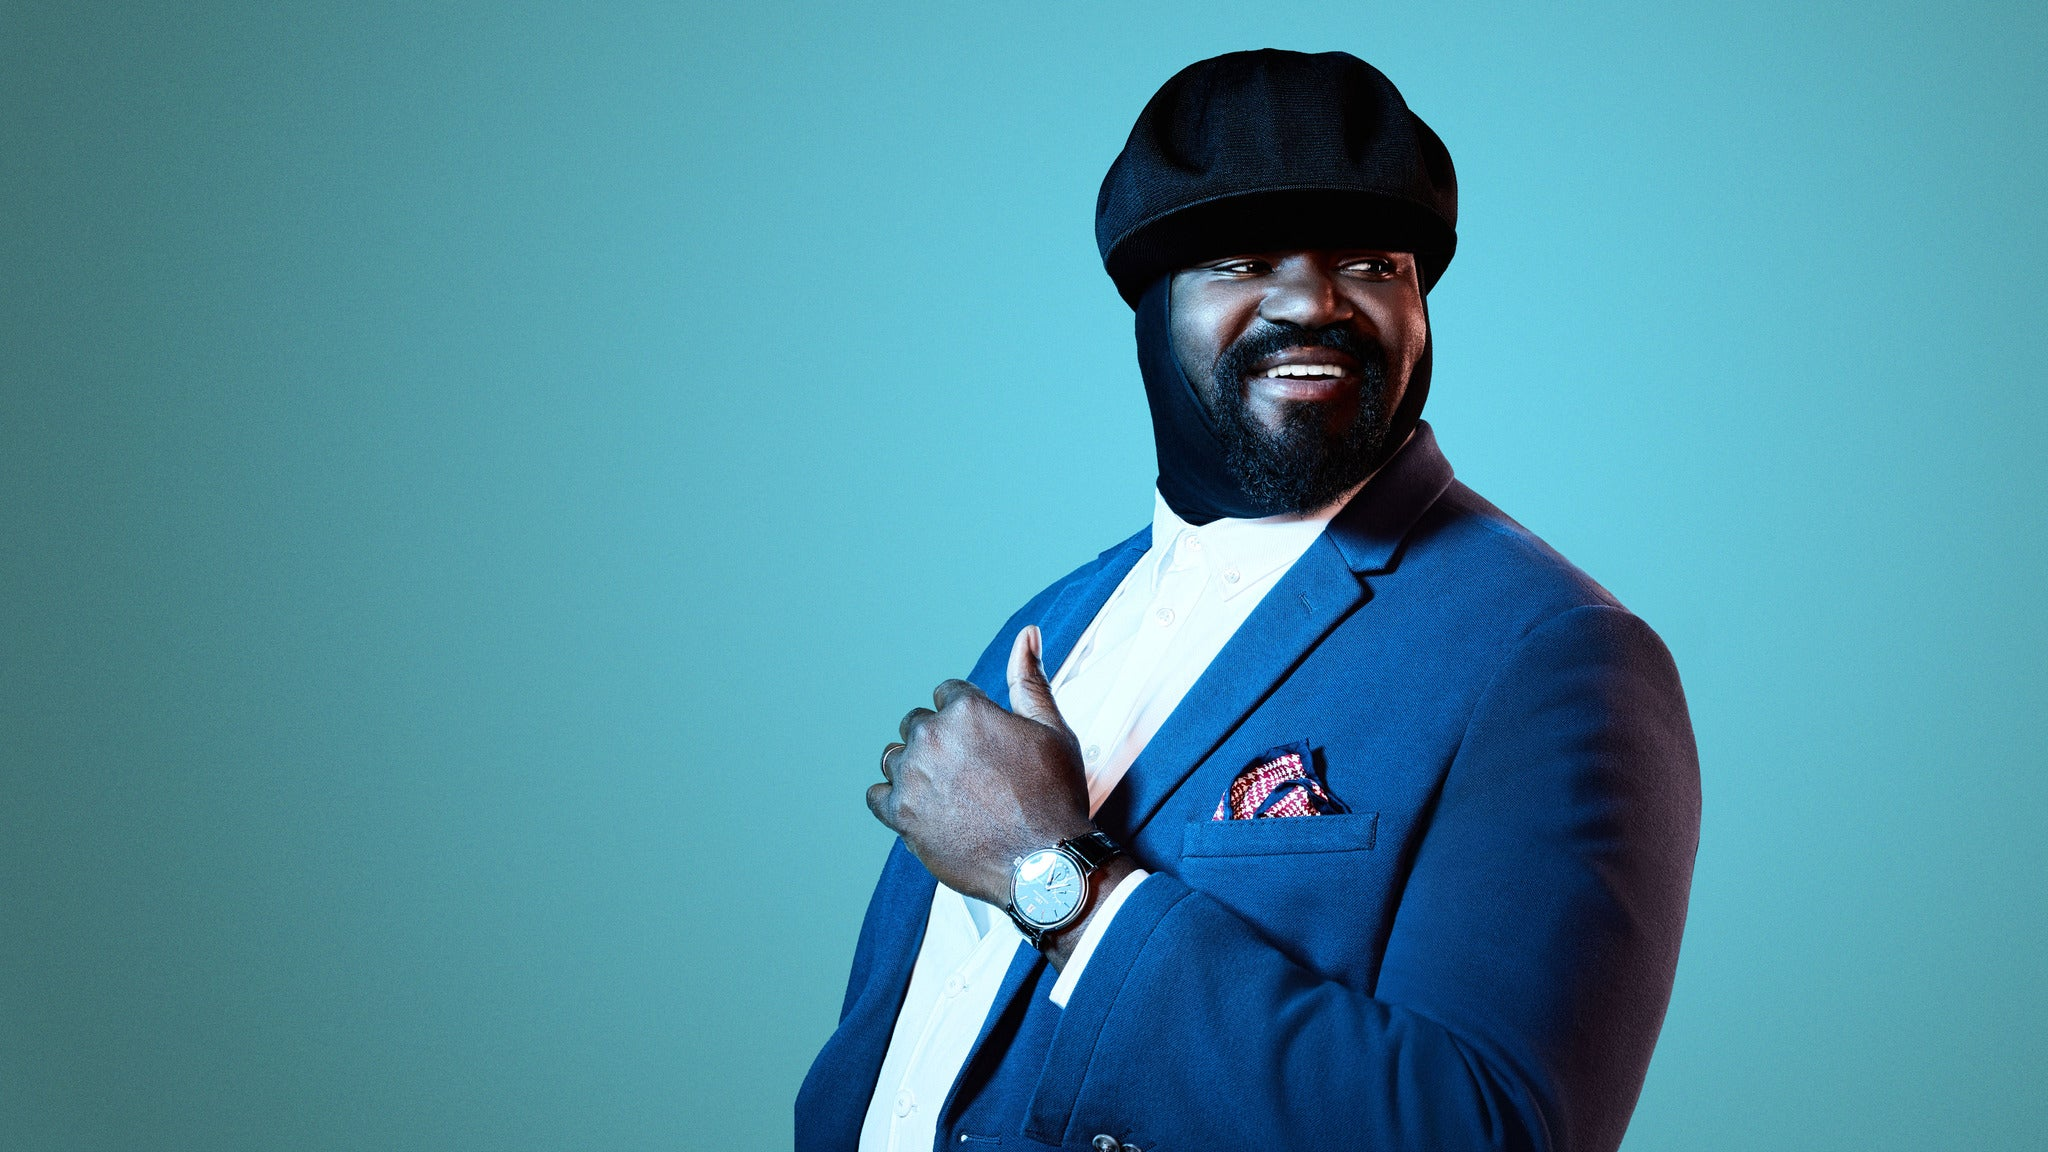 Gregory Porter at Balboa Theatre - San Diego, CA 92101